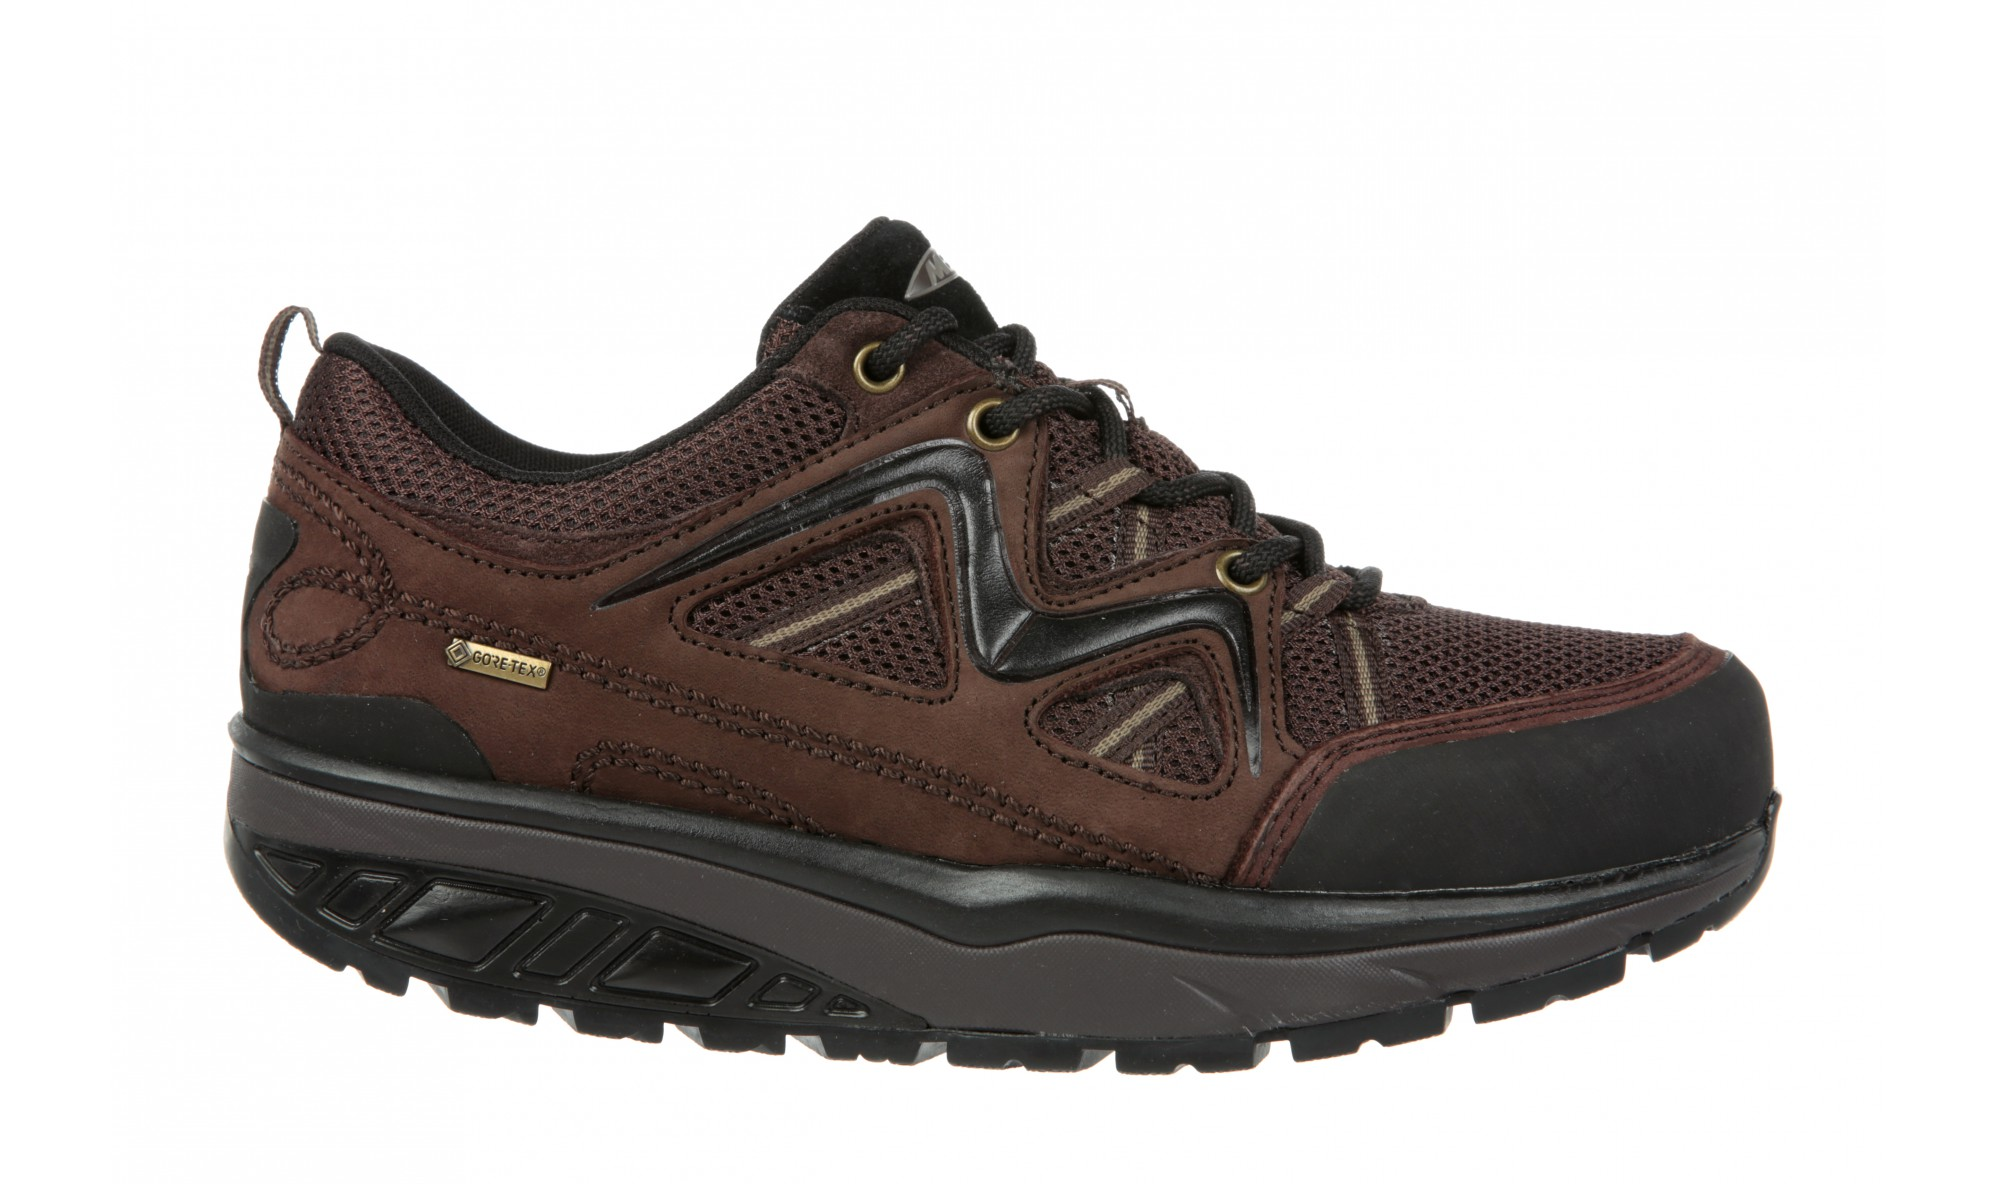 MBT Women's Himaya GTX Brown/Black